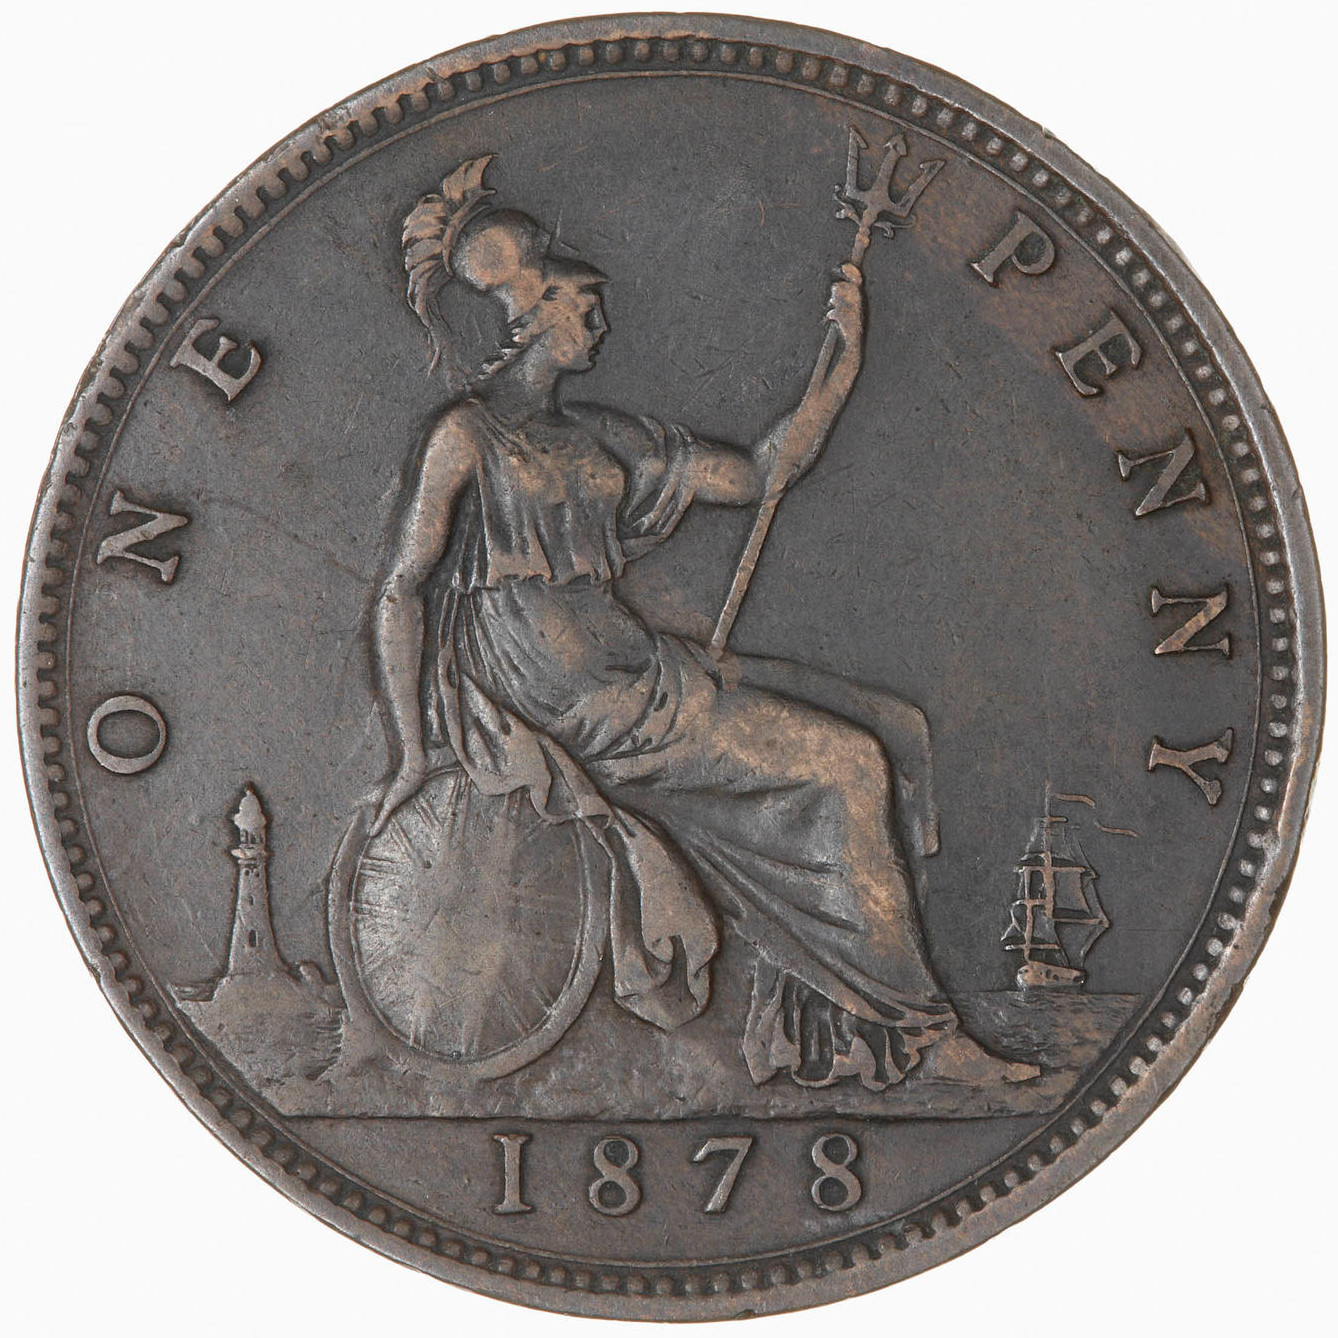 Penny 1878: Photo Coin - Penny, Queen Victoria, Great Britain, 1878